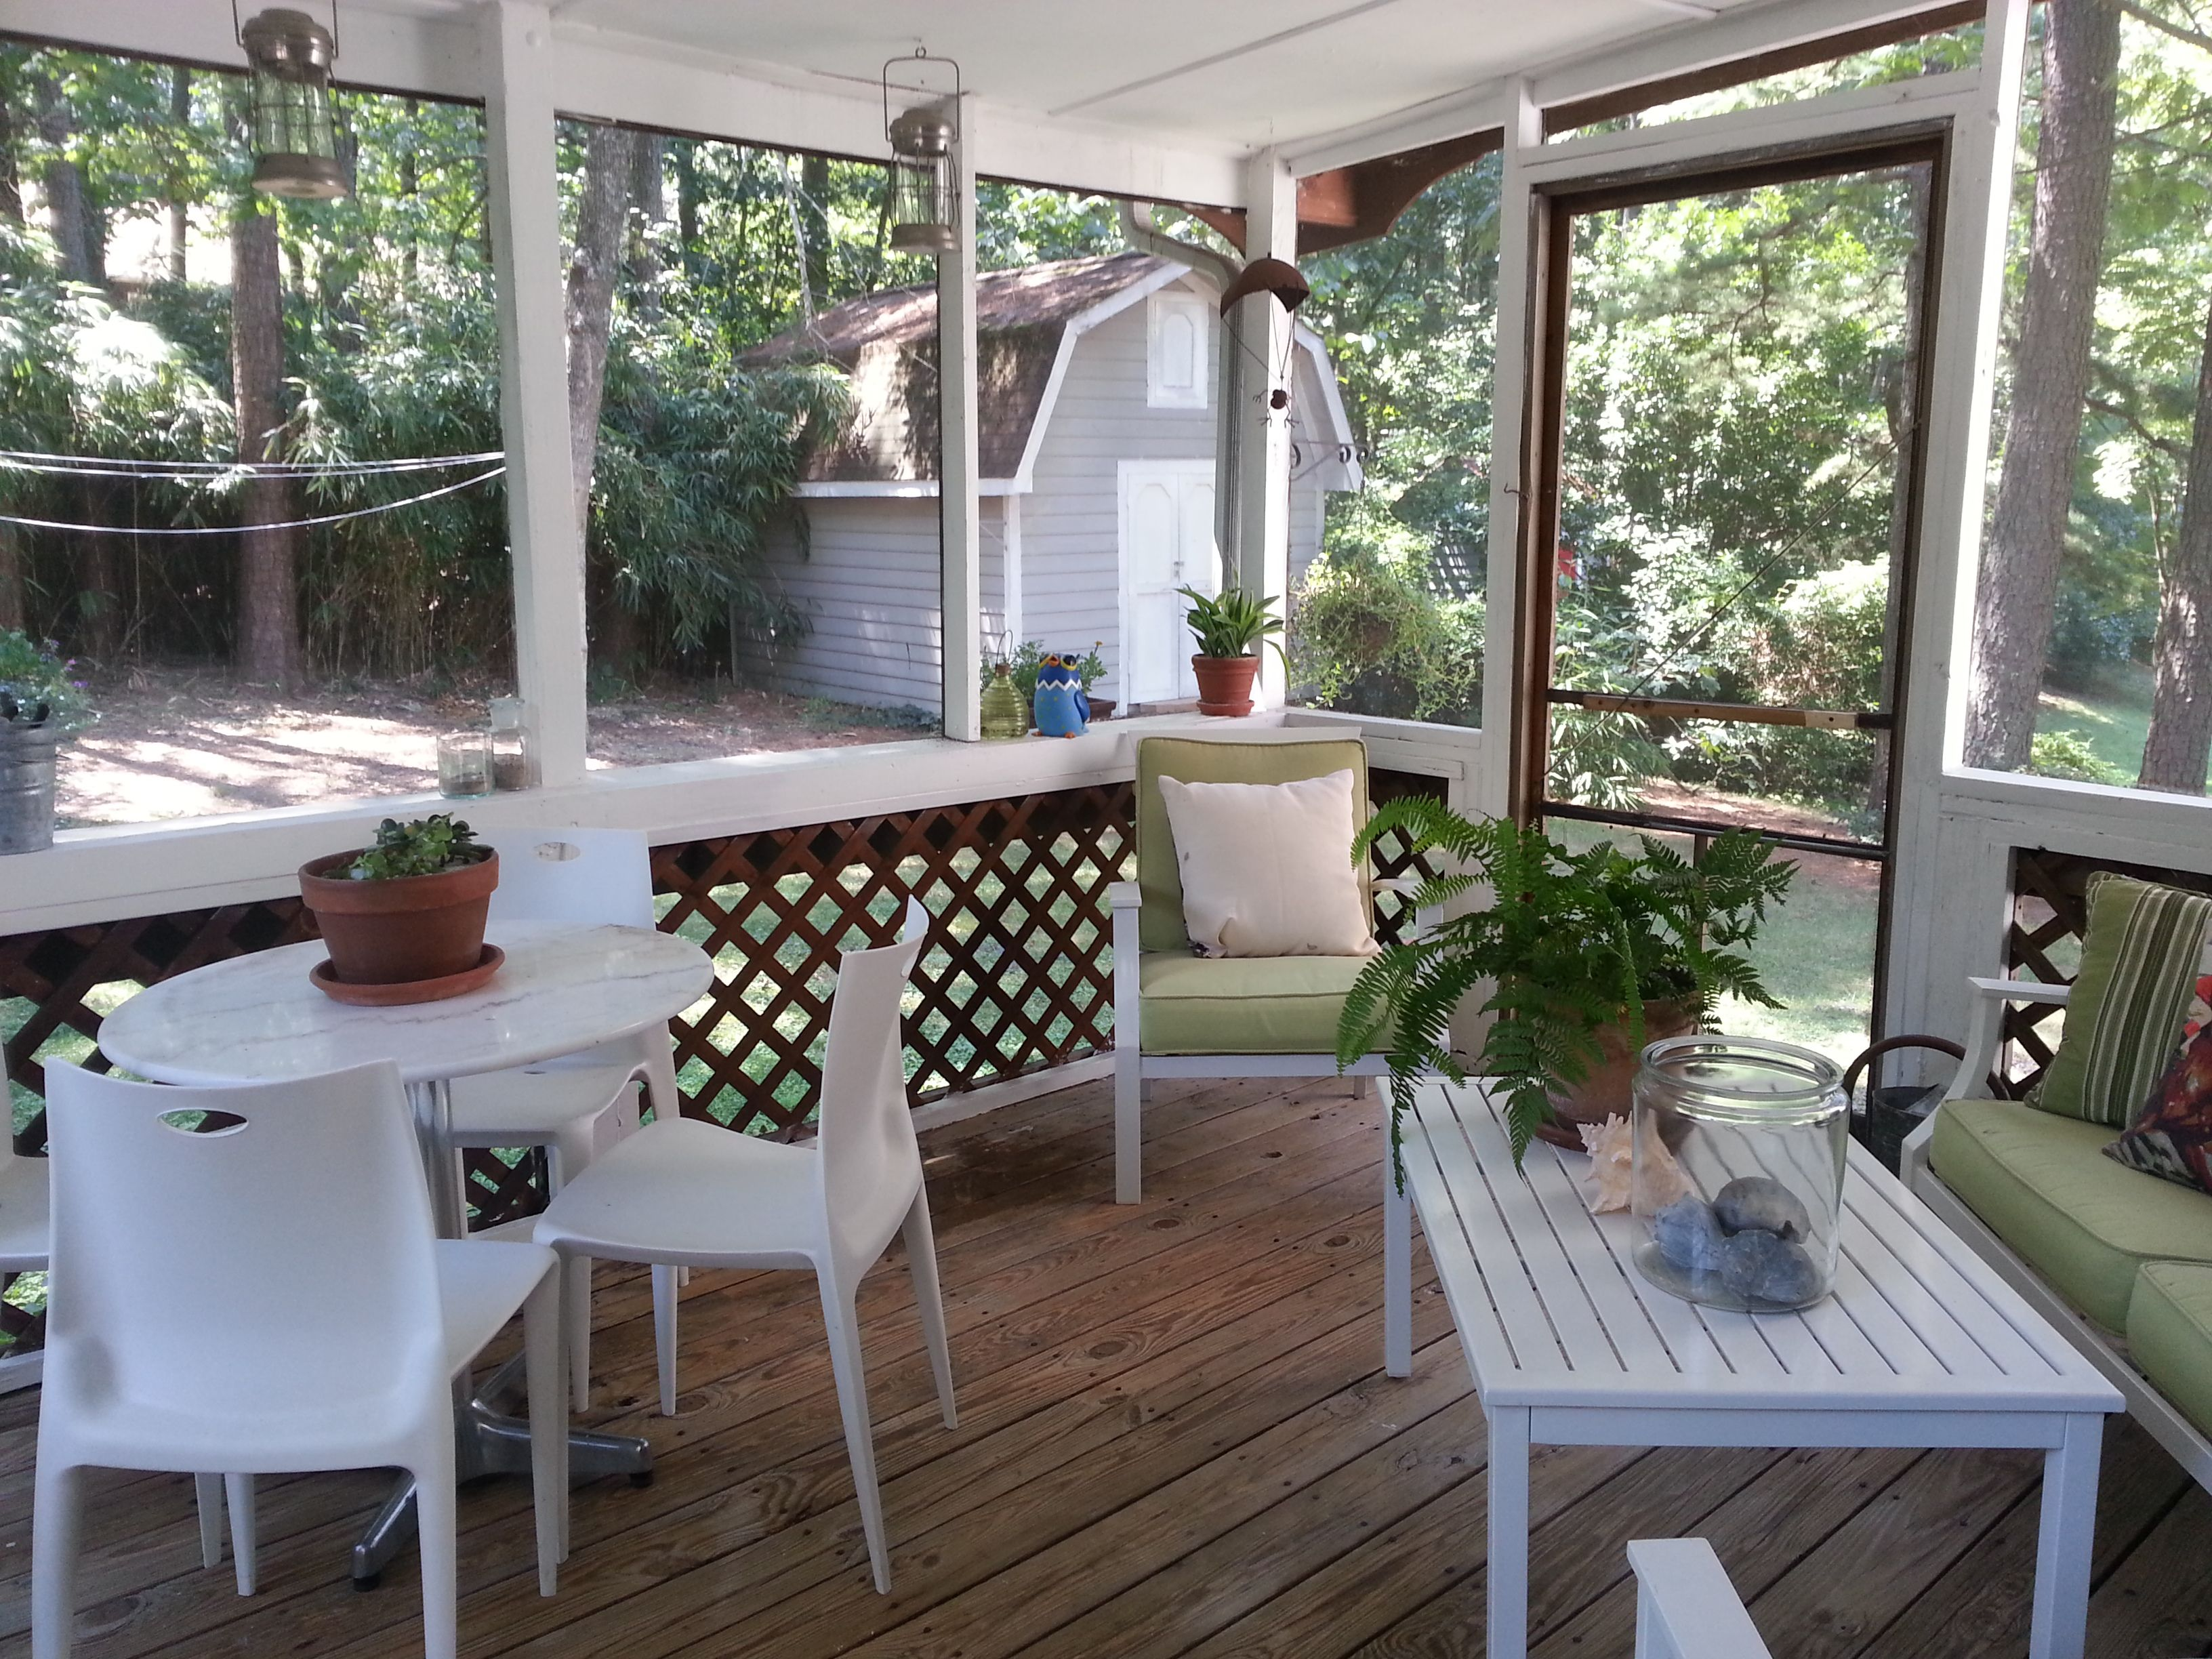 Dan Ini Garden Shed With Screened Porch